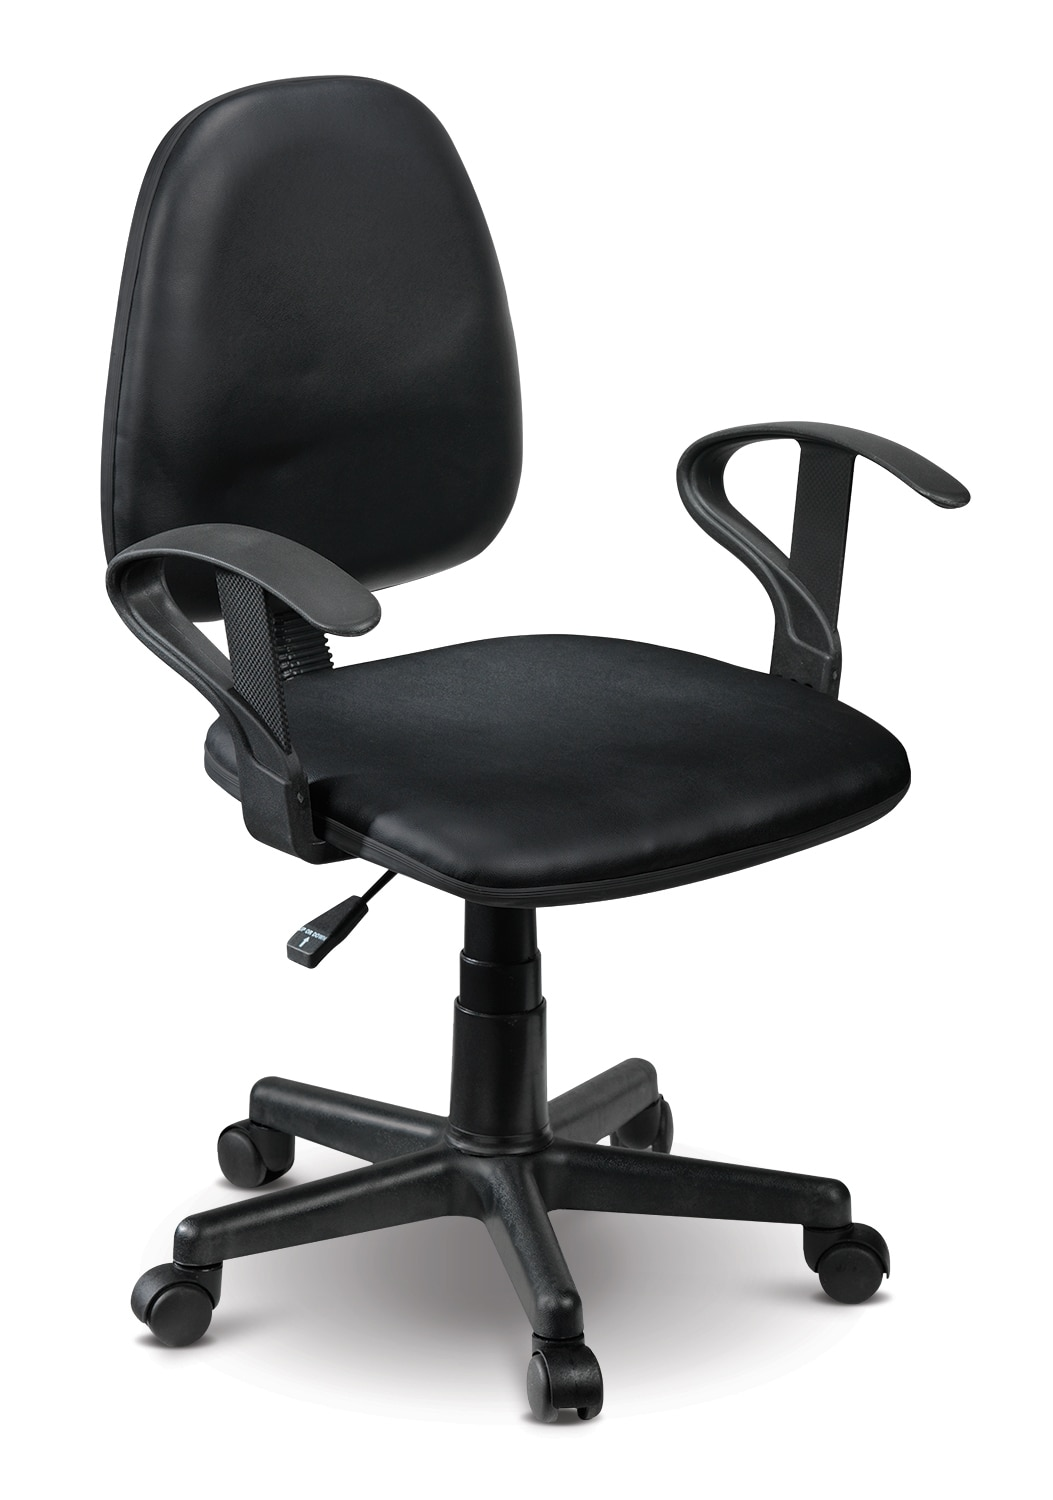 Home Office Furniture - Dresden Office Chair - Black